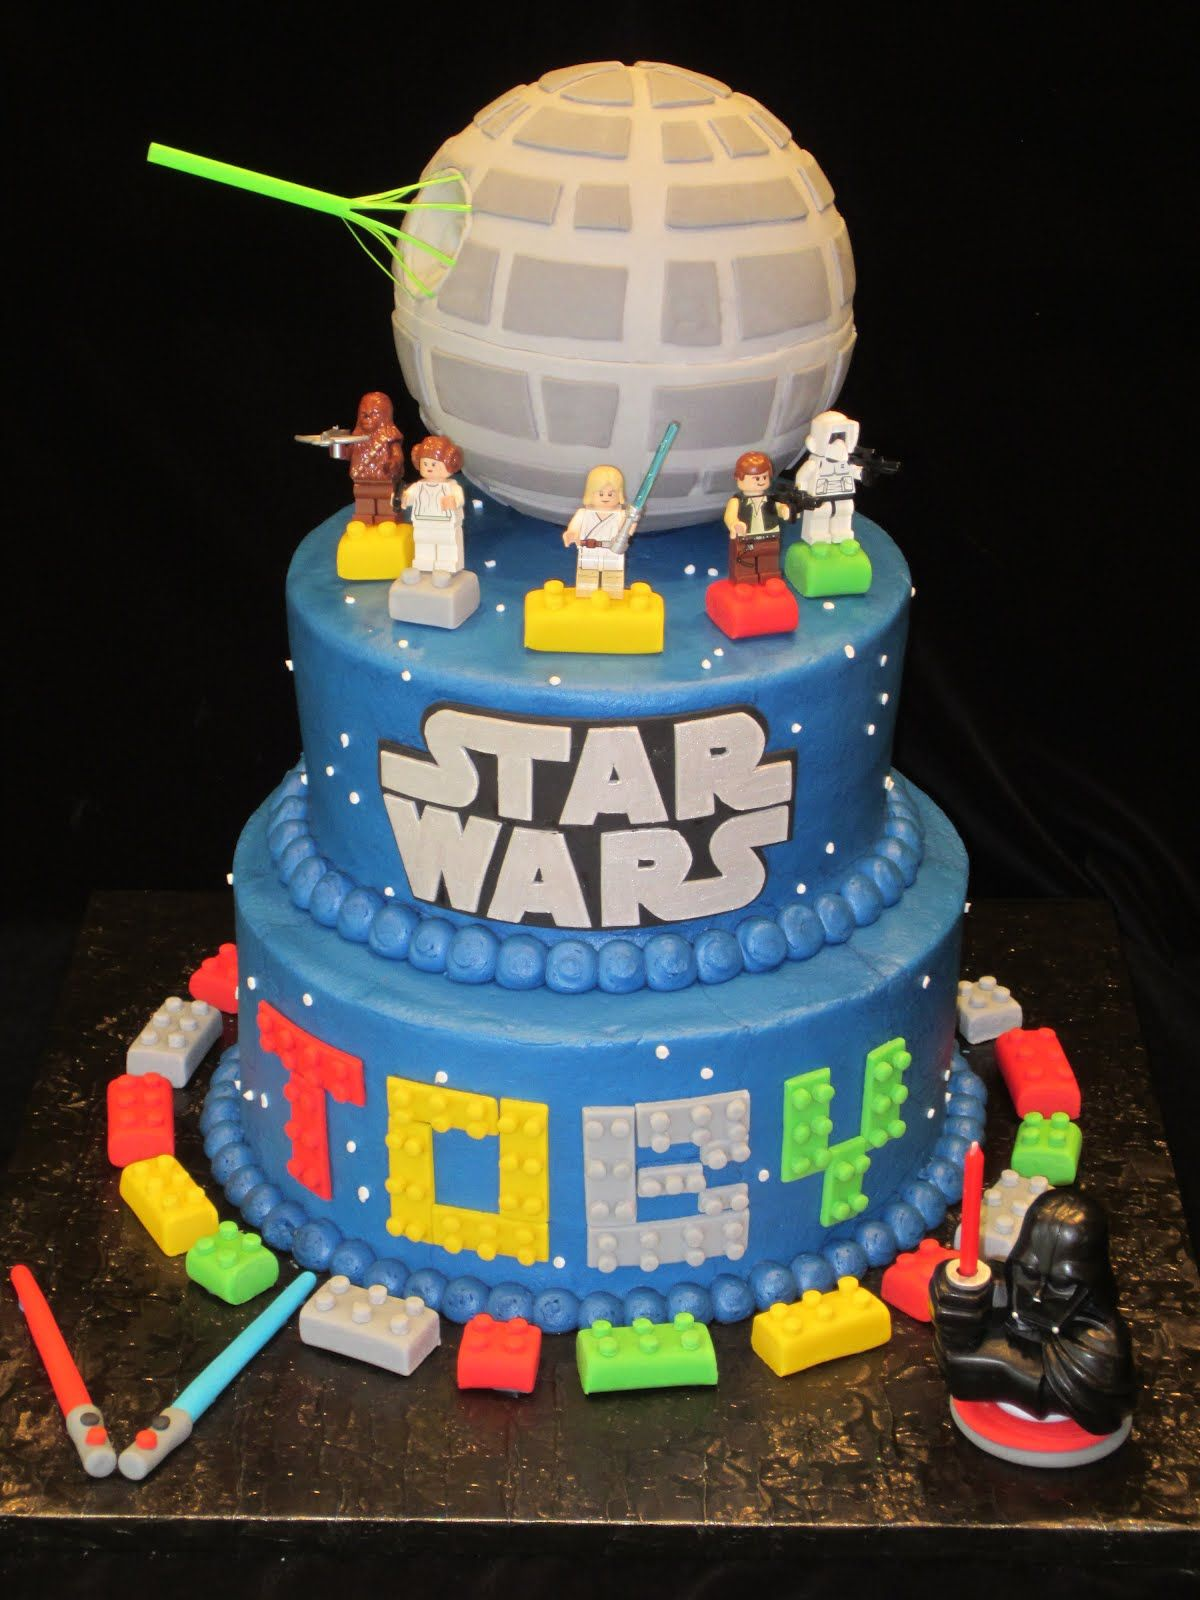 Star Wars Lego Cakewish I Could Just Pluck This Out Of The Screen